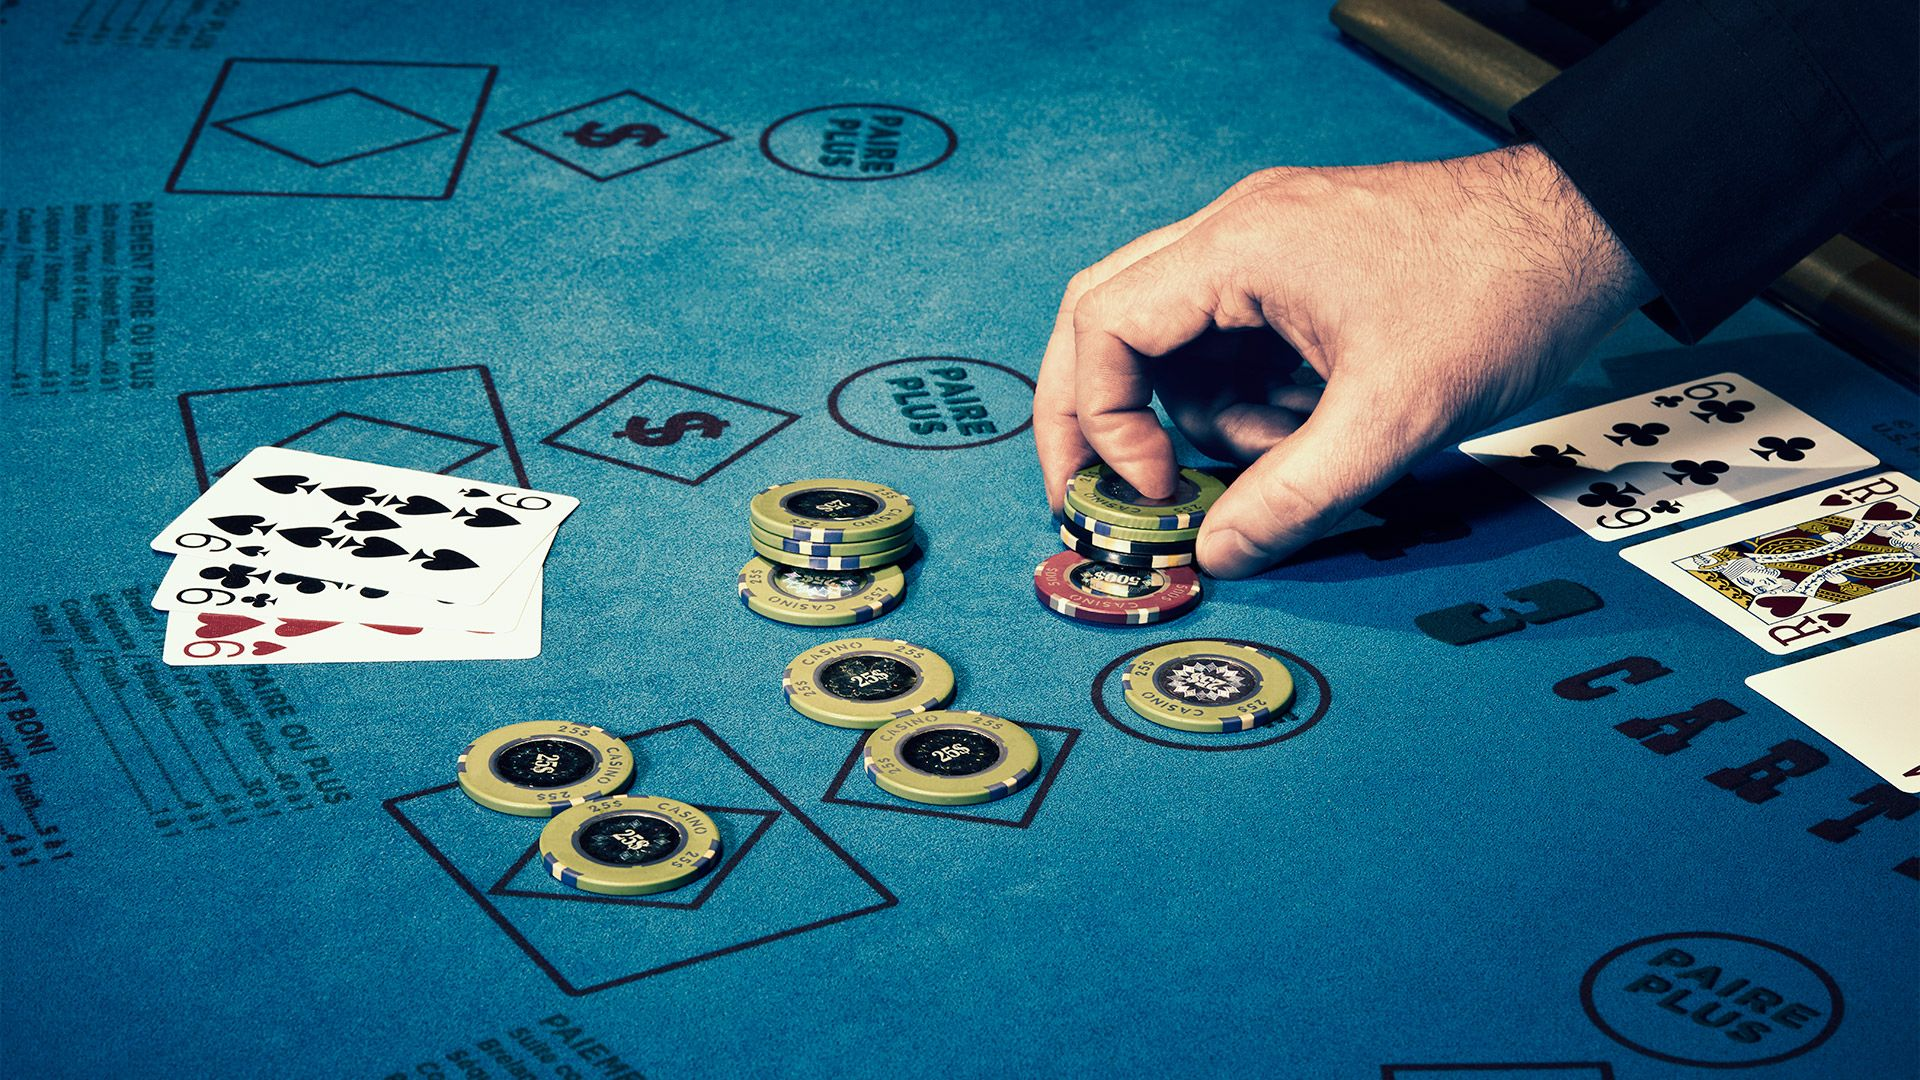 How To Play Like A Professional In Texas Holdem?